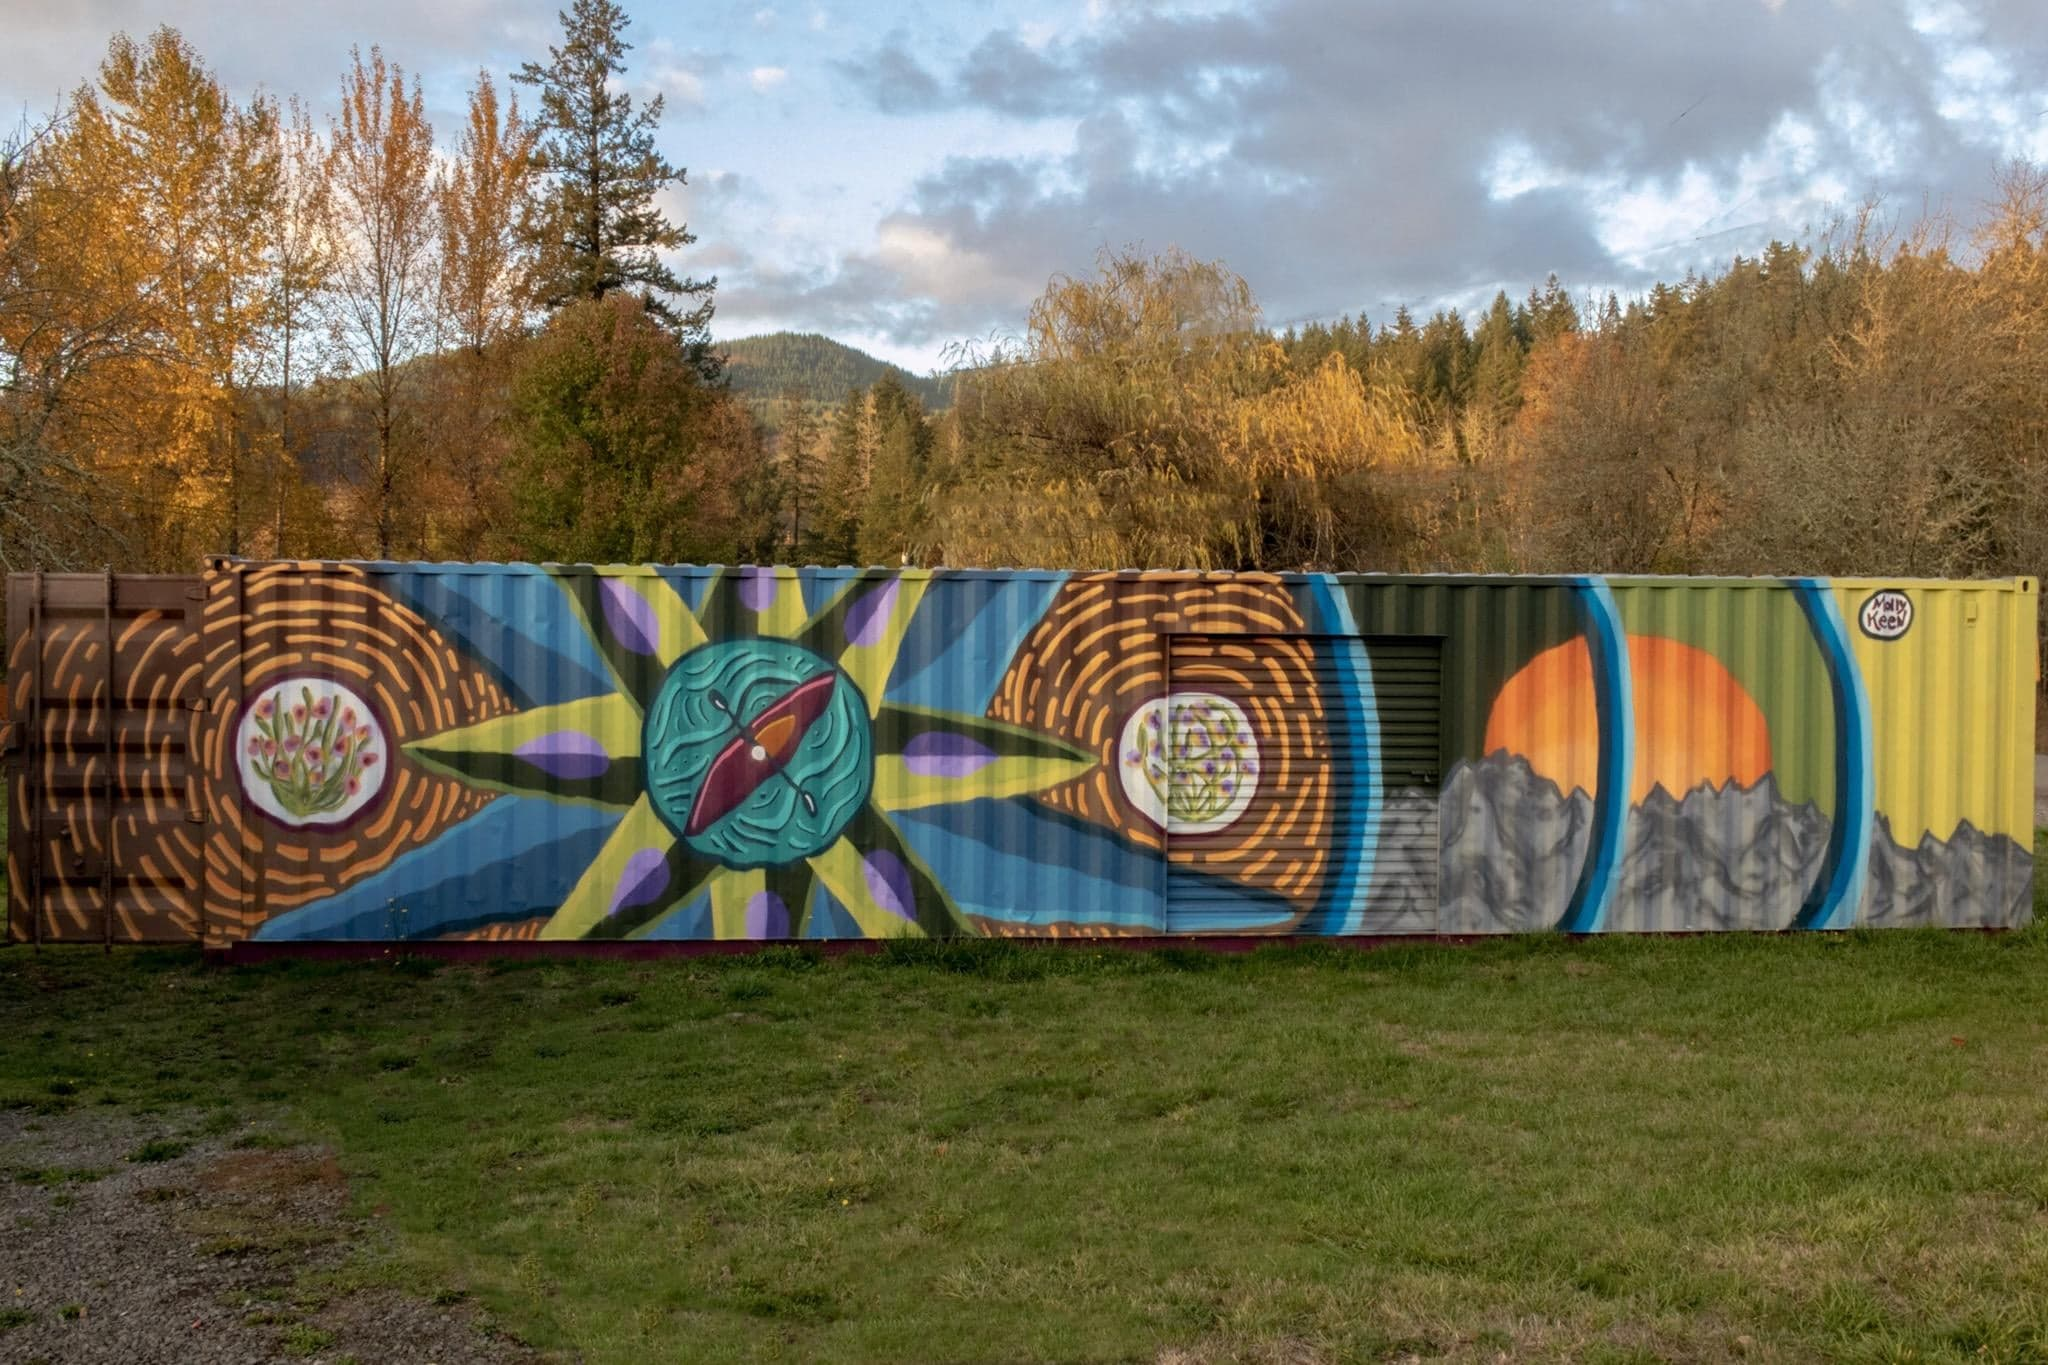 The Majestic Mural of the Santiam River